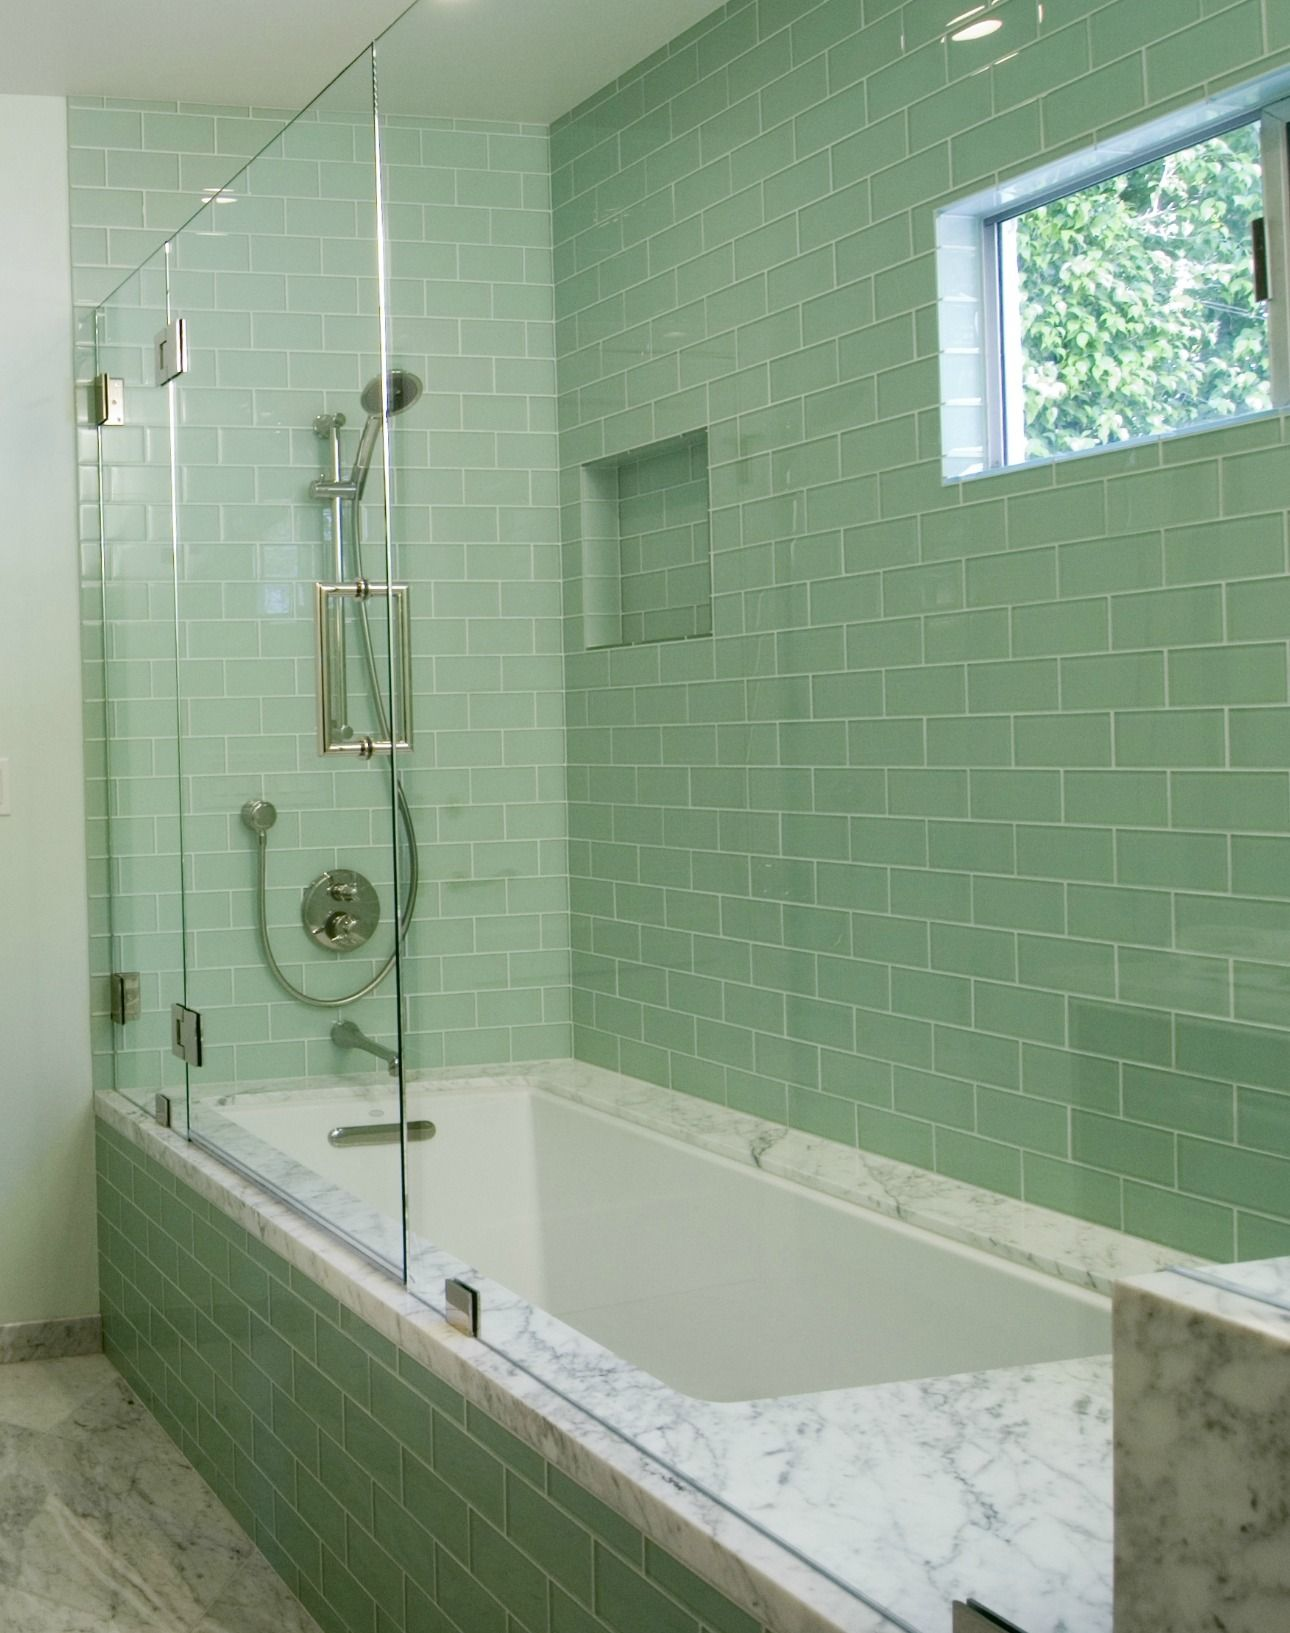 Modern Green Glass Subway Tile For Bathroom Wall Panels Also Chic ...